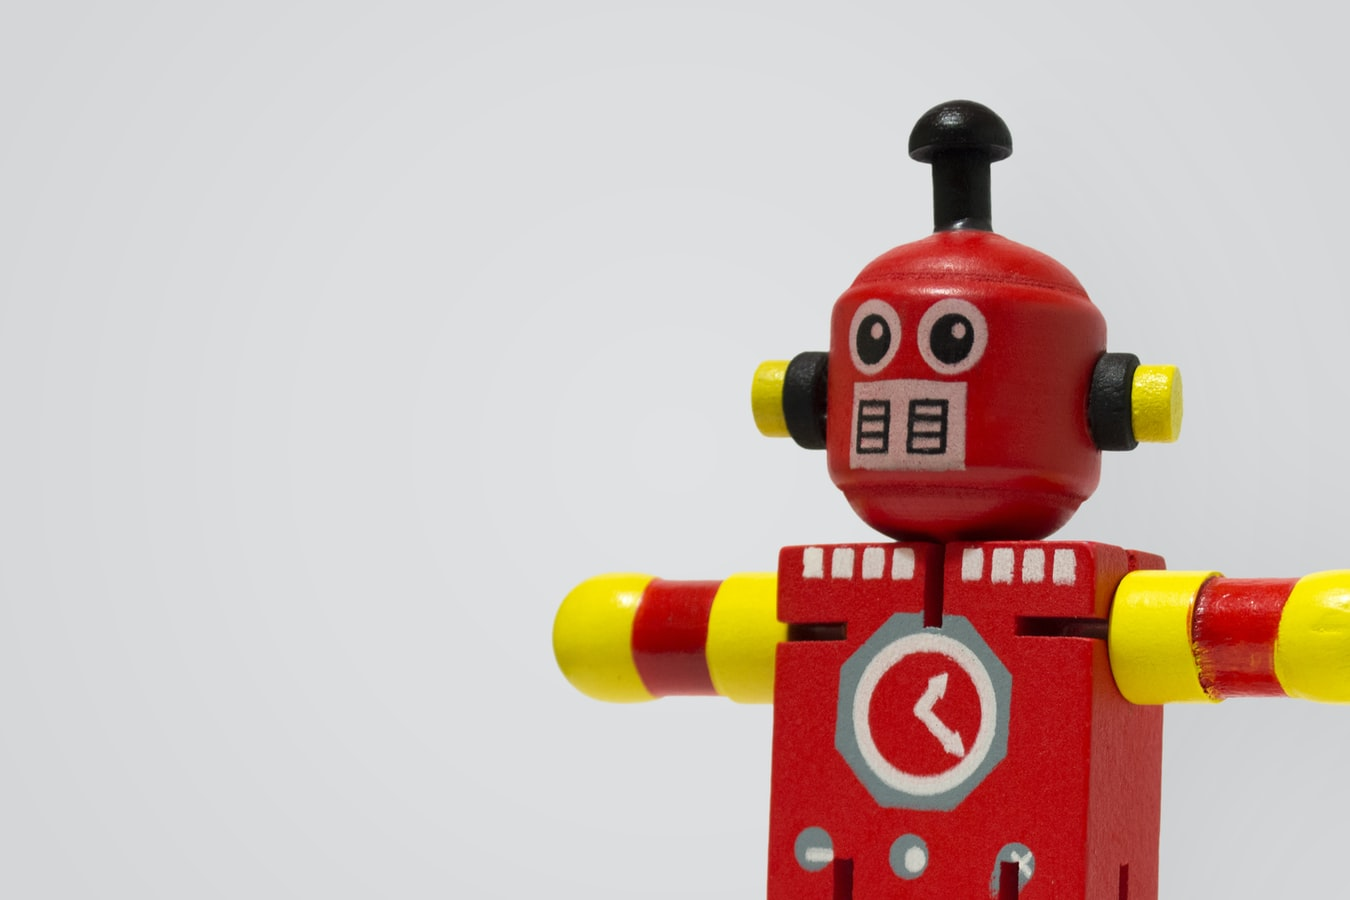 A Robot in Red and Yellow